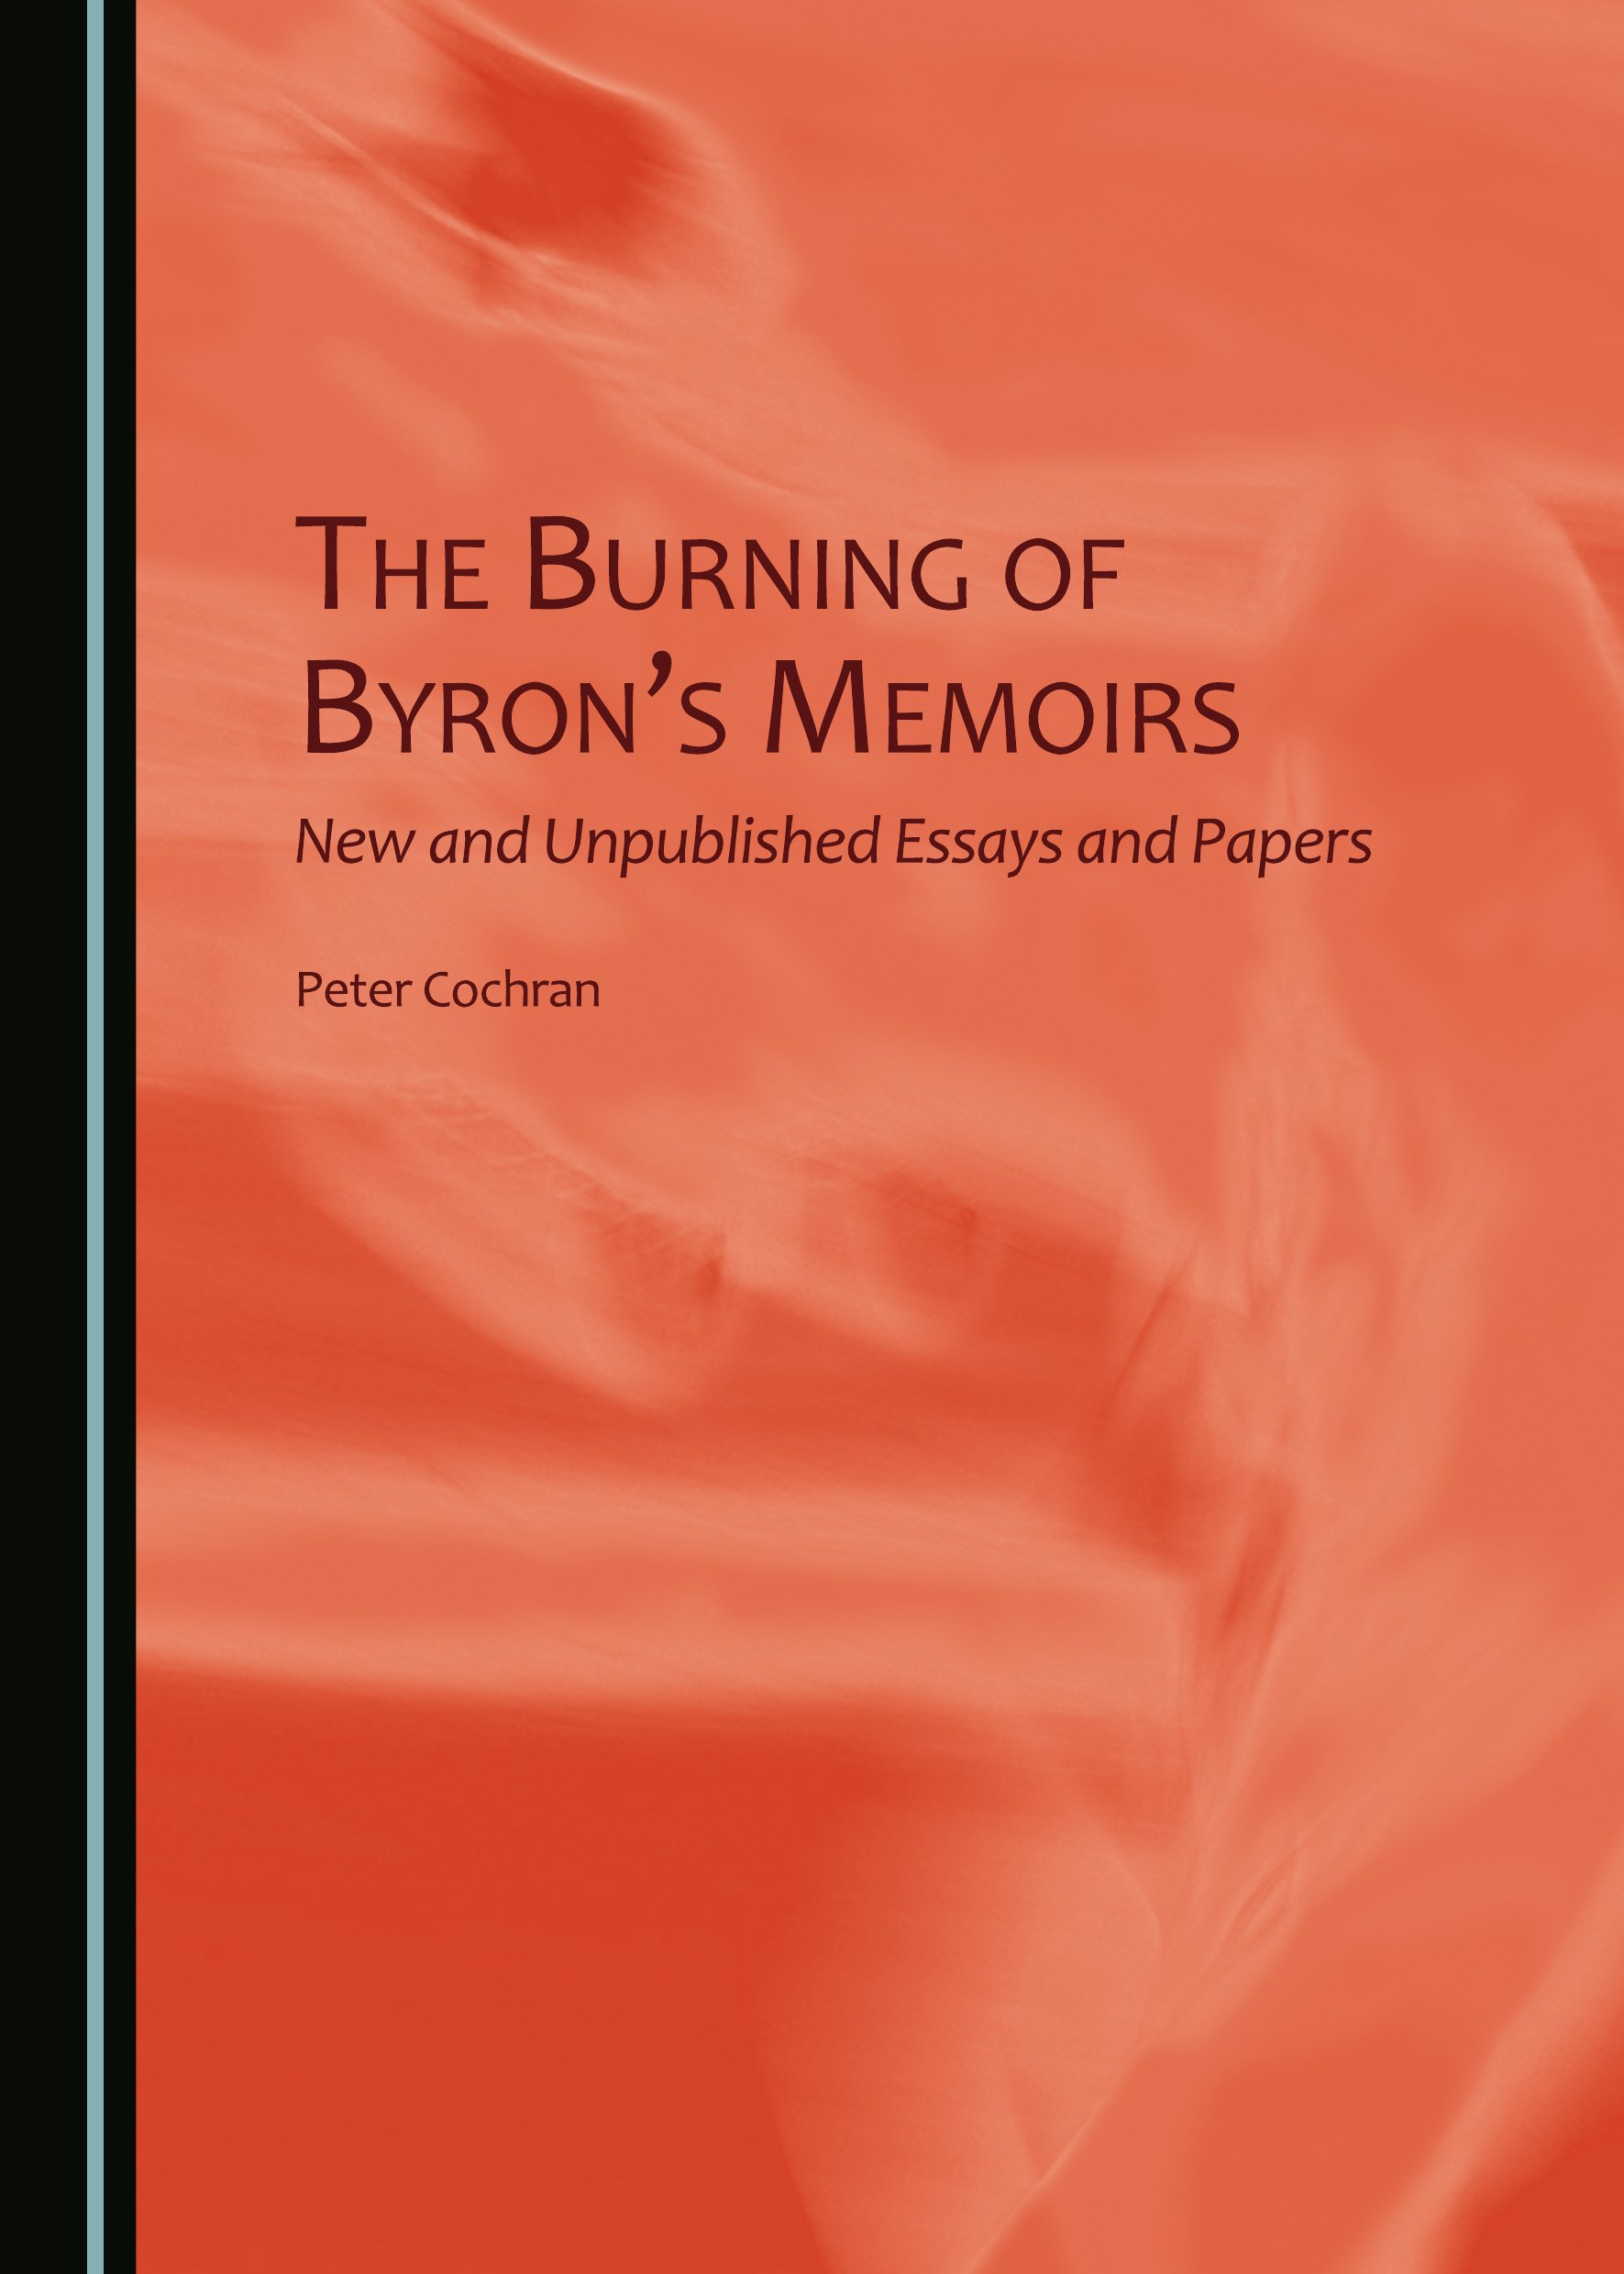 The Burning of Byron's Memoirs: New and Unpublished Essays and Papers